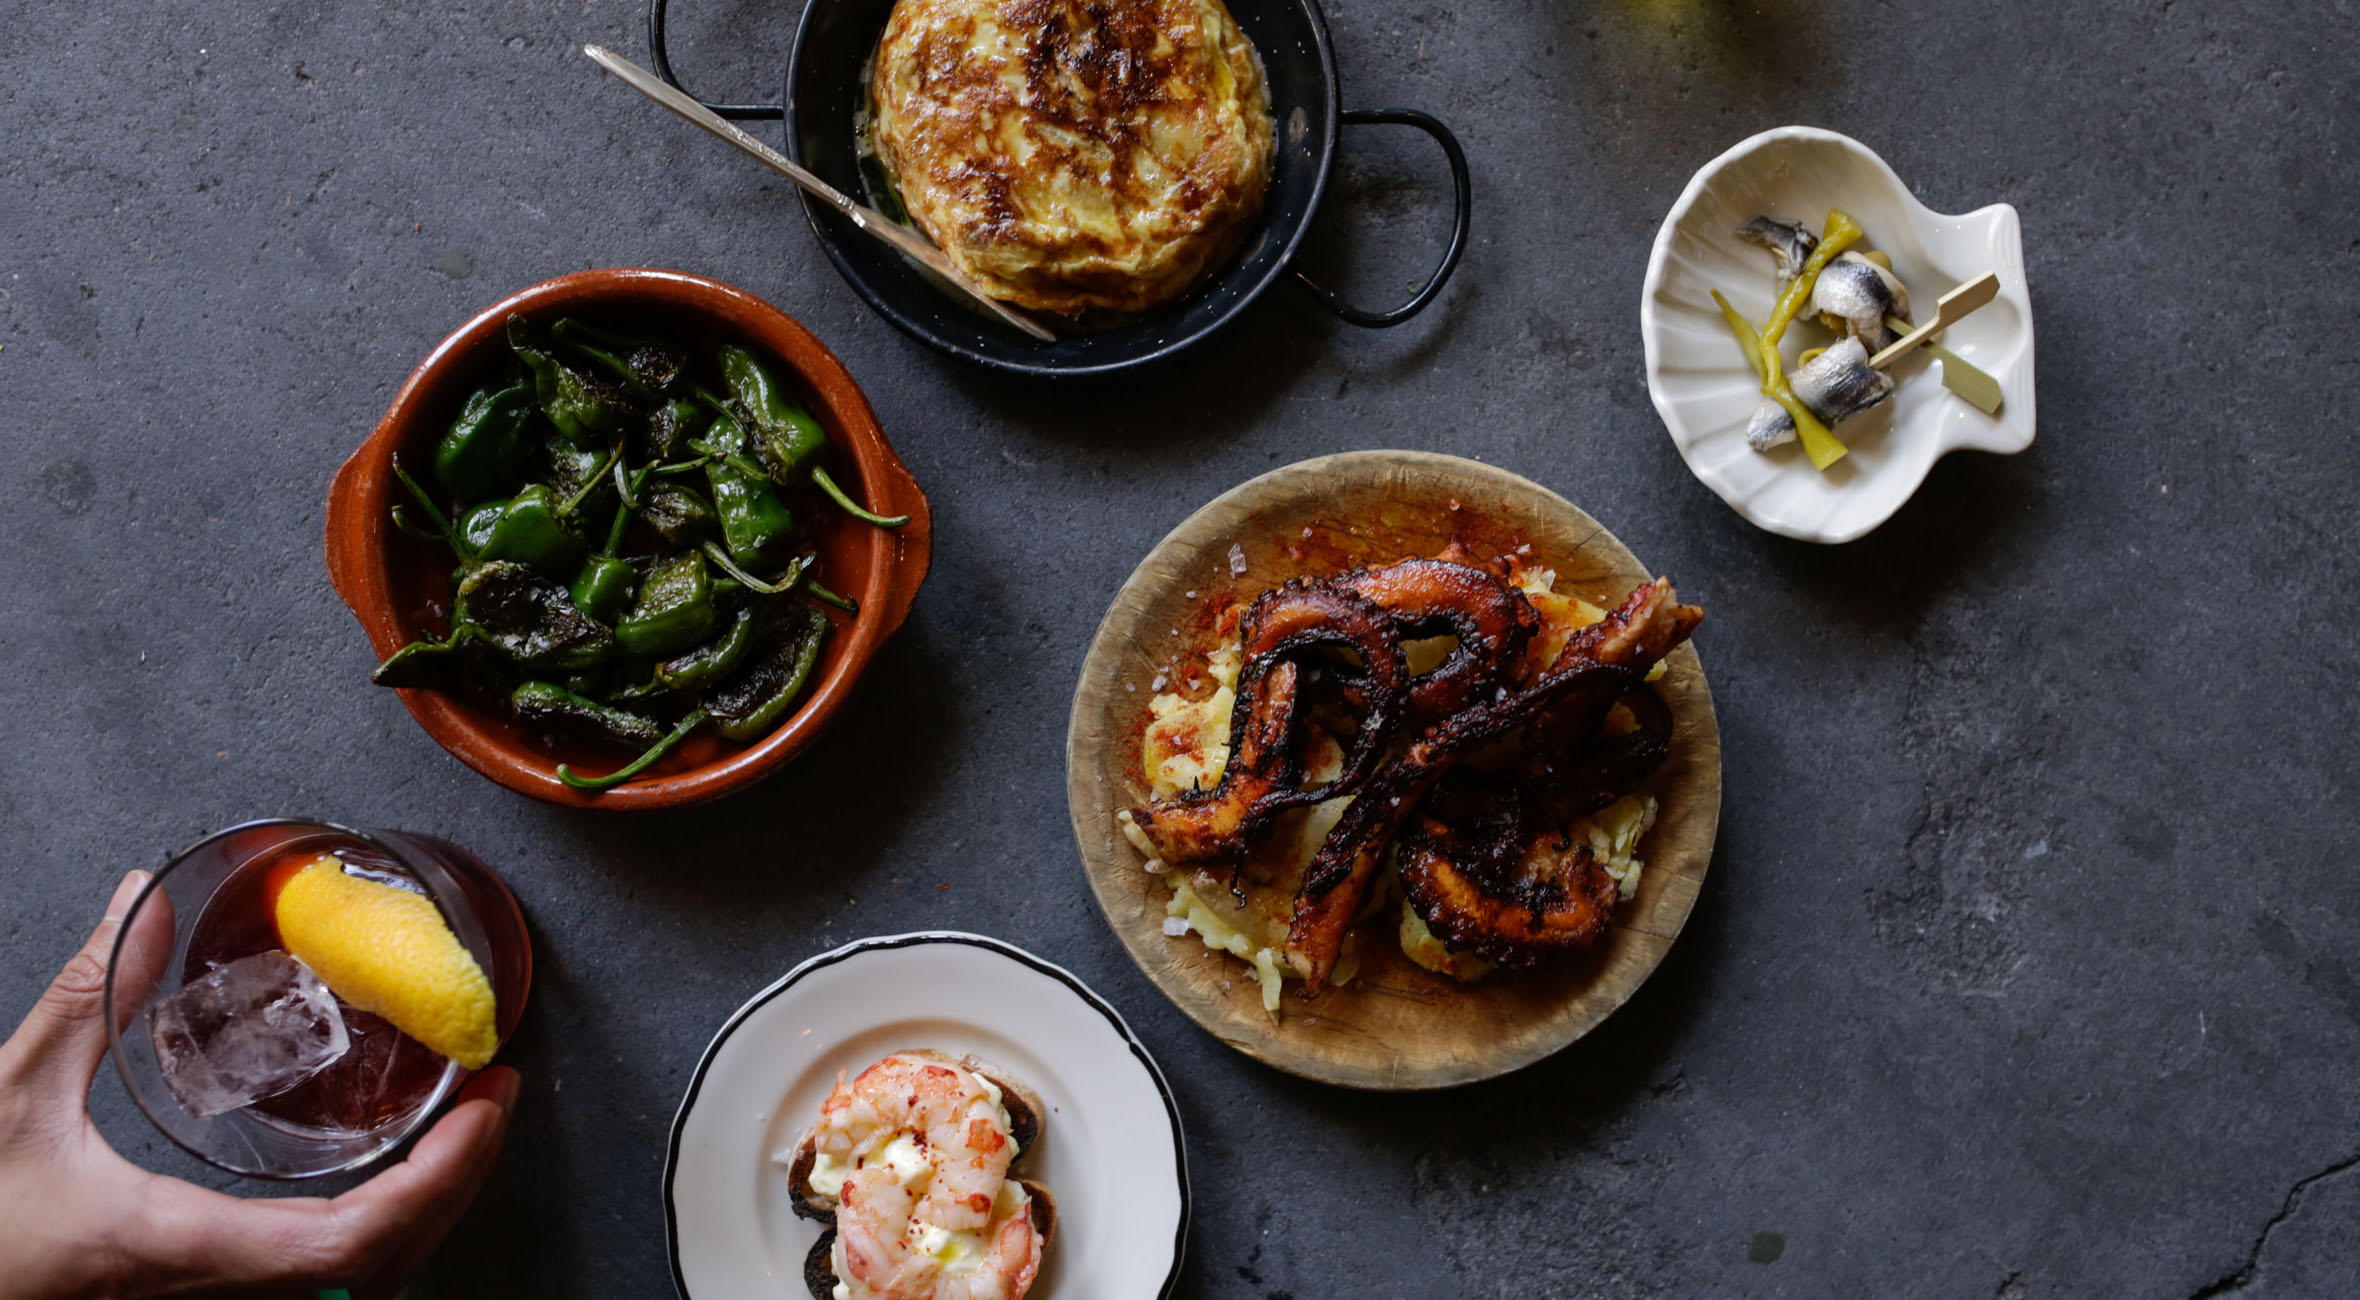 Chef's Menu at Huertas in East Village – Top-Notch Spanish Cuisine Recommended by Michelin